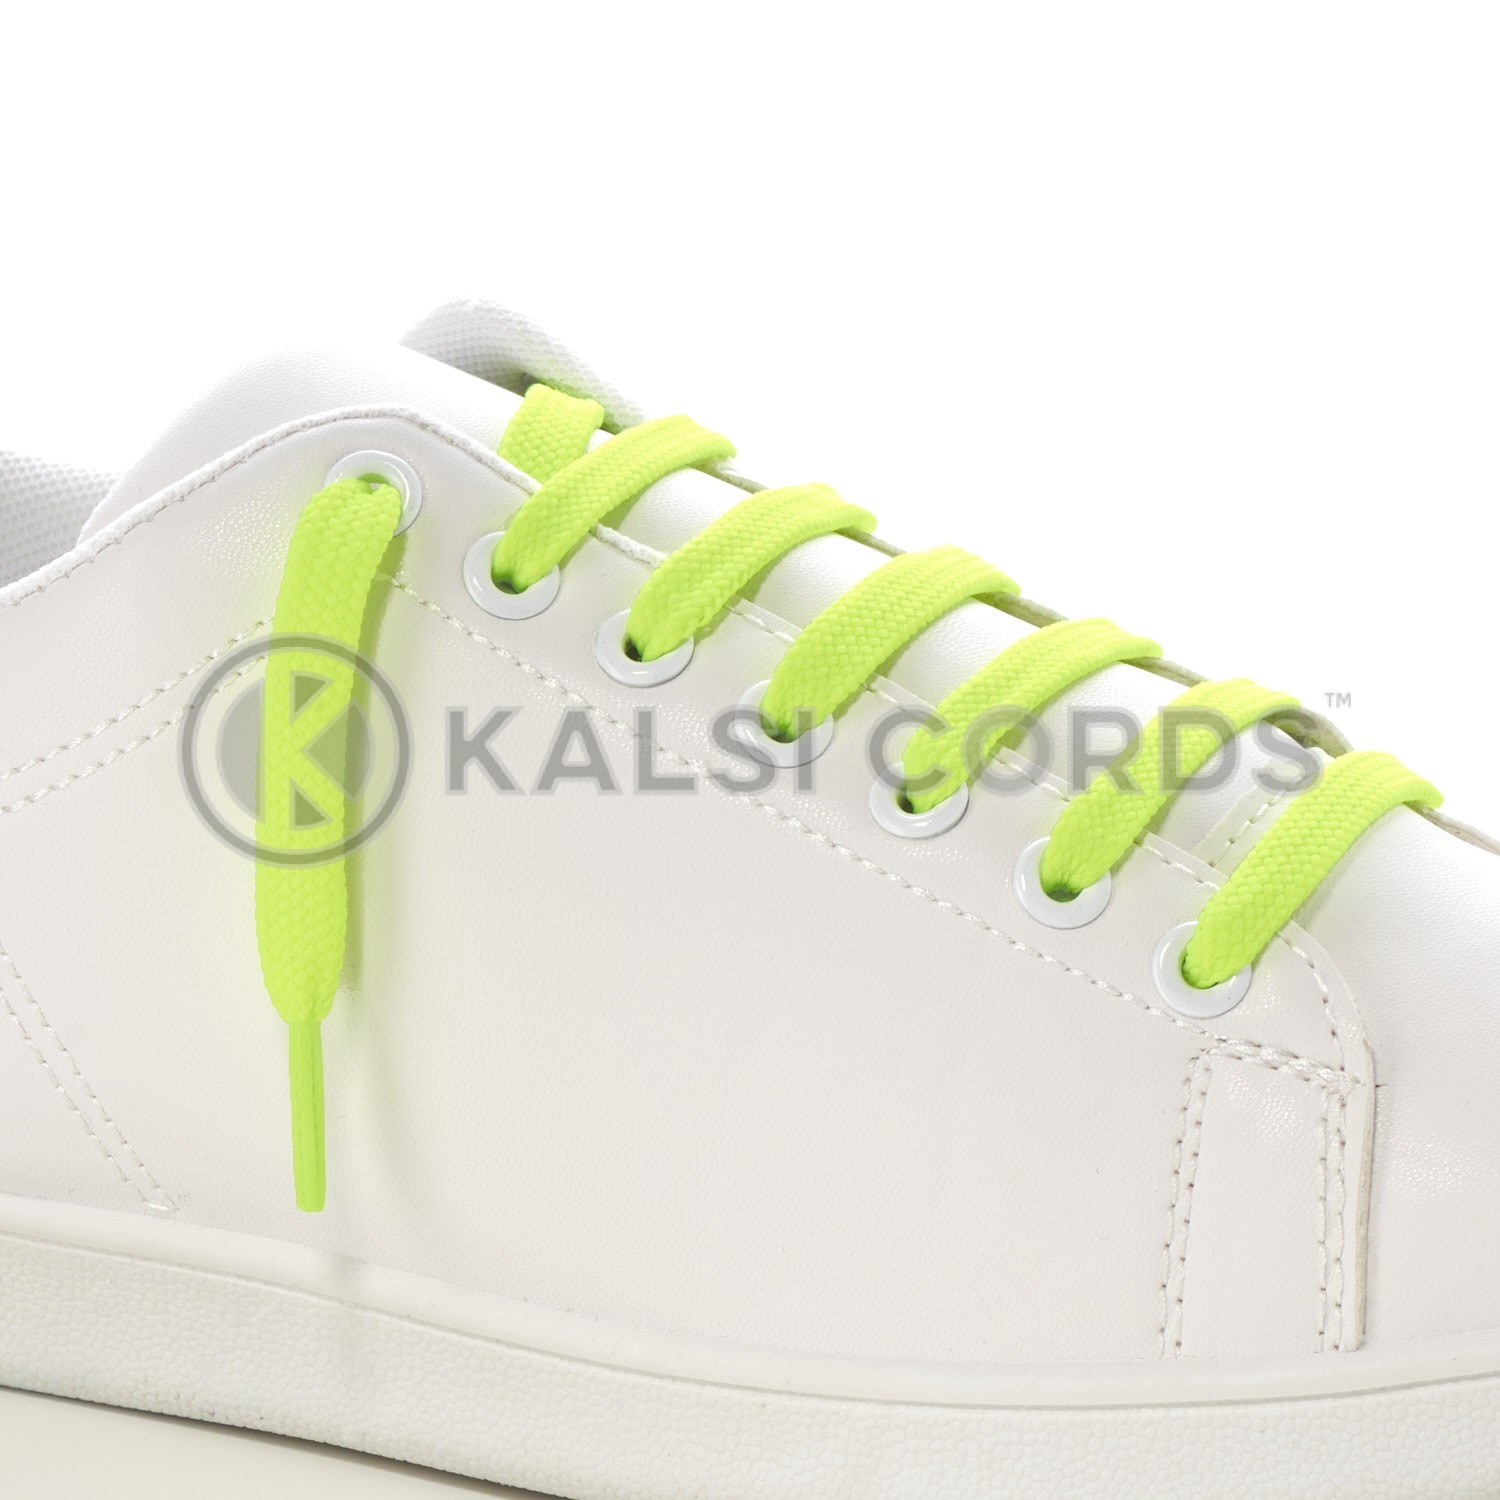 9mm Flat Shoe Laces Tubular Fluorescent Neon Yellow PG053 Sports Trainers Boots Footwear Drawstring Drawcord